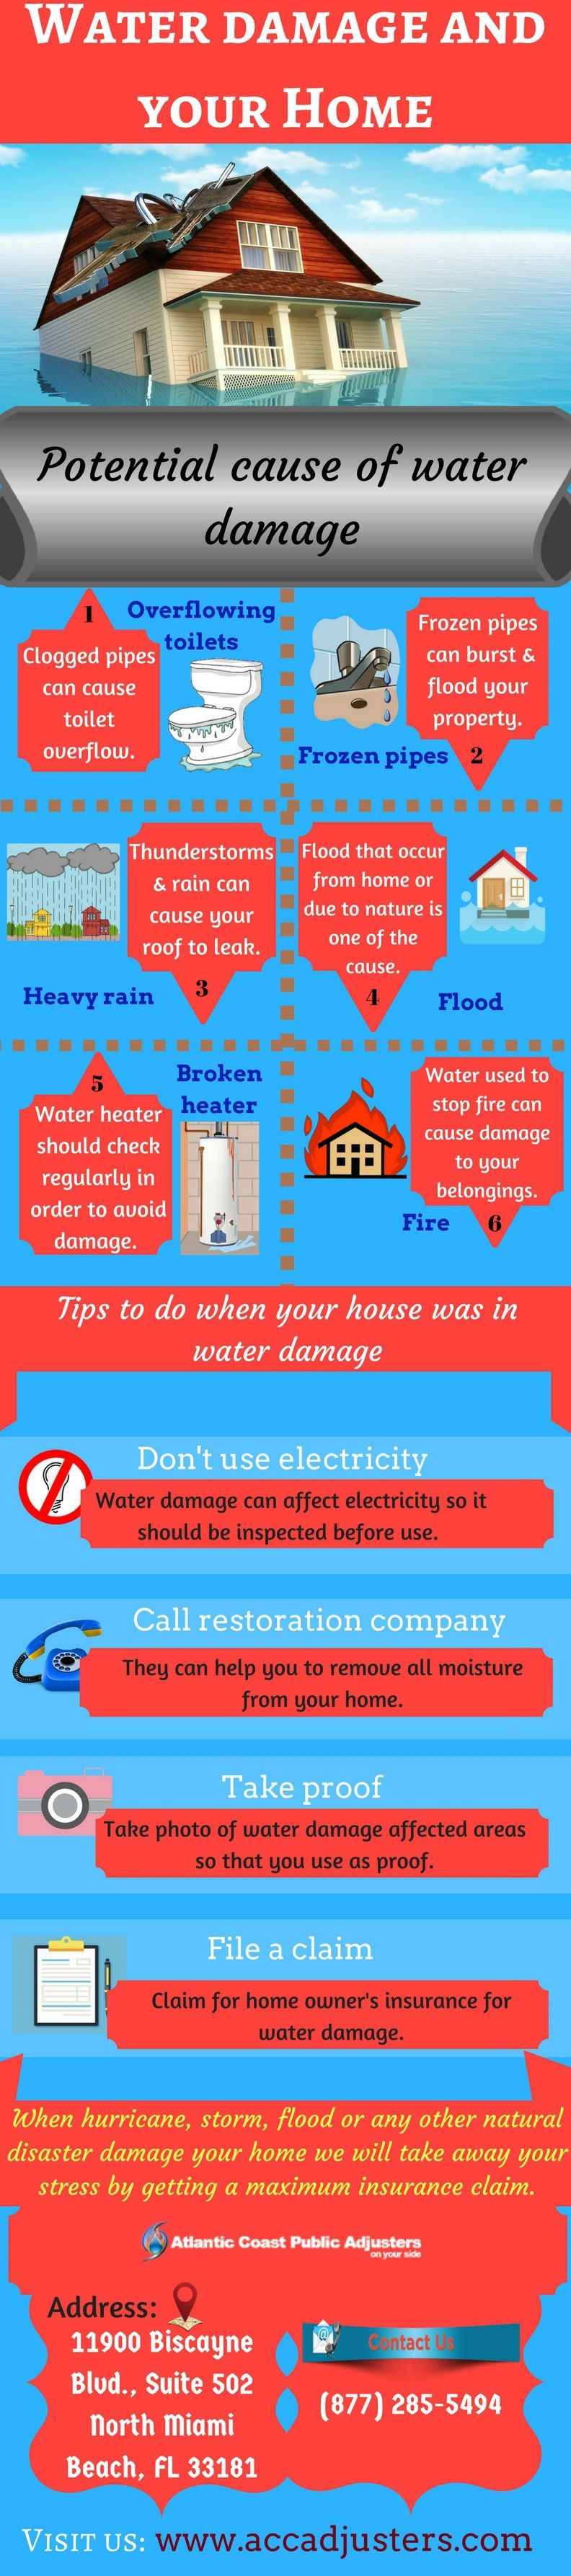 If You Re Standing Ankle Deep In A Flooded Basement Want To File A Water Damage Insurance Claim Let Our E With Images Water Damage Repair Damage Restoration Water Damage